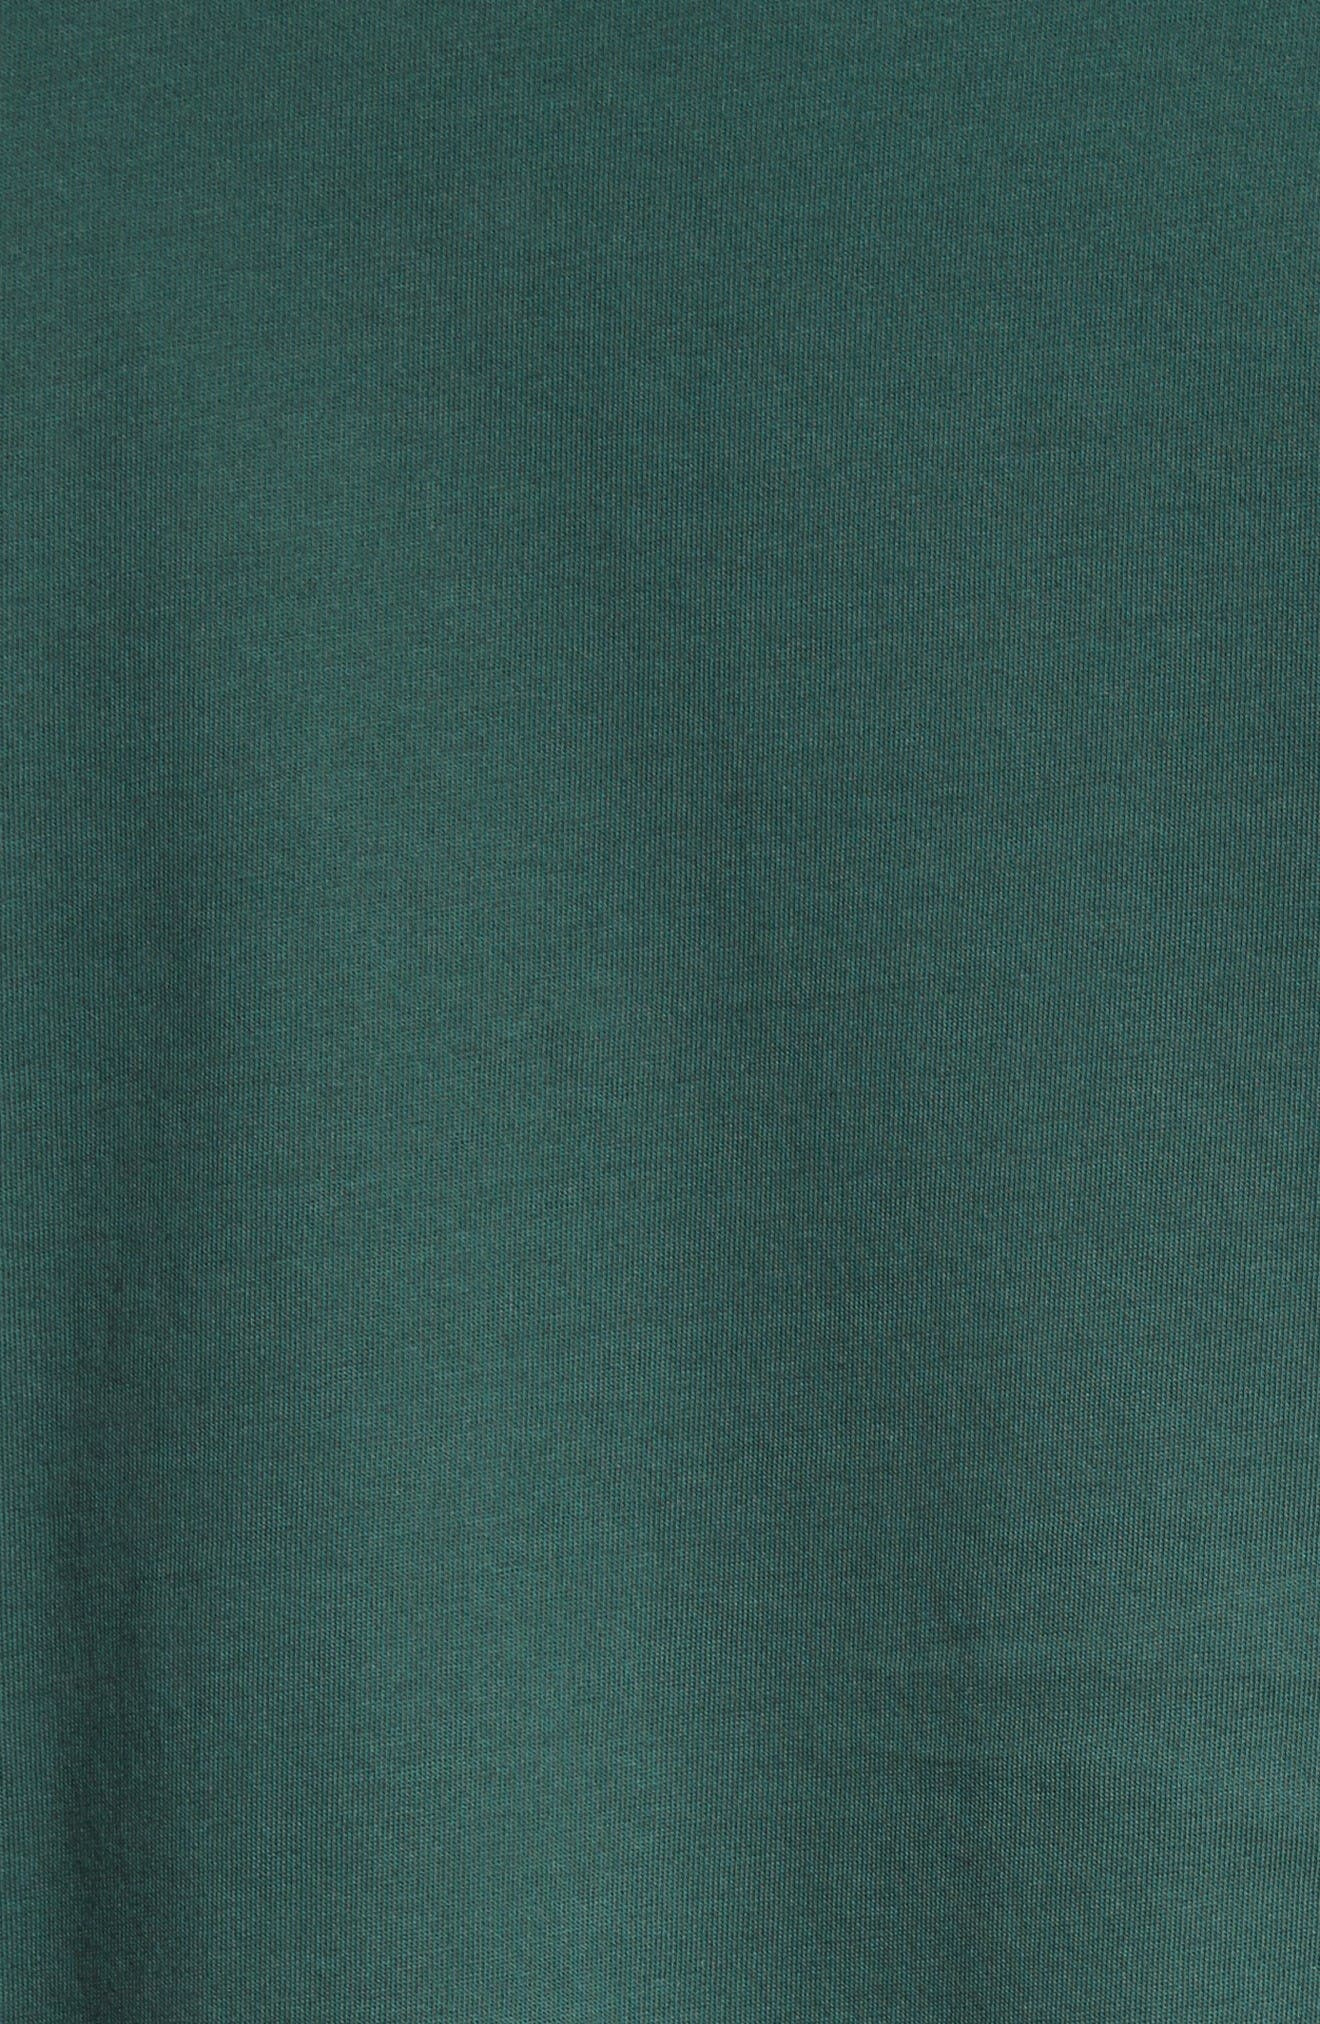 Esben T-Shirt,                             Alternate thumbnail 5, color,                             Verge Green